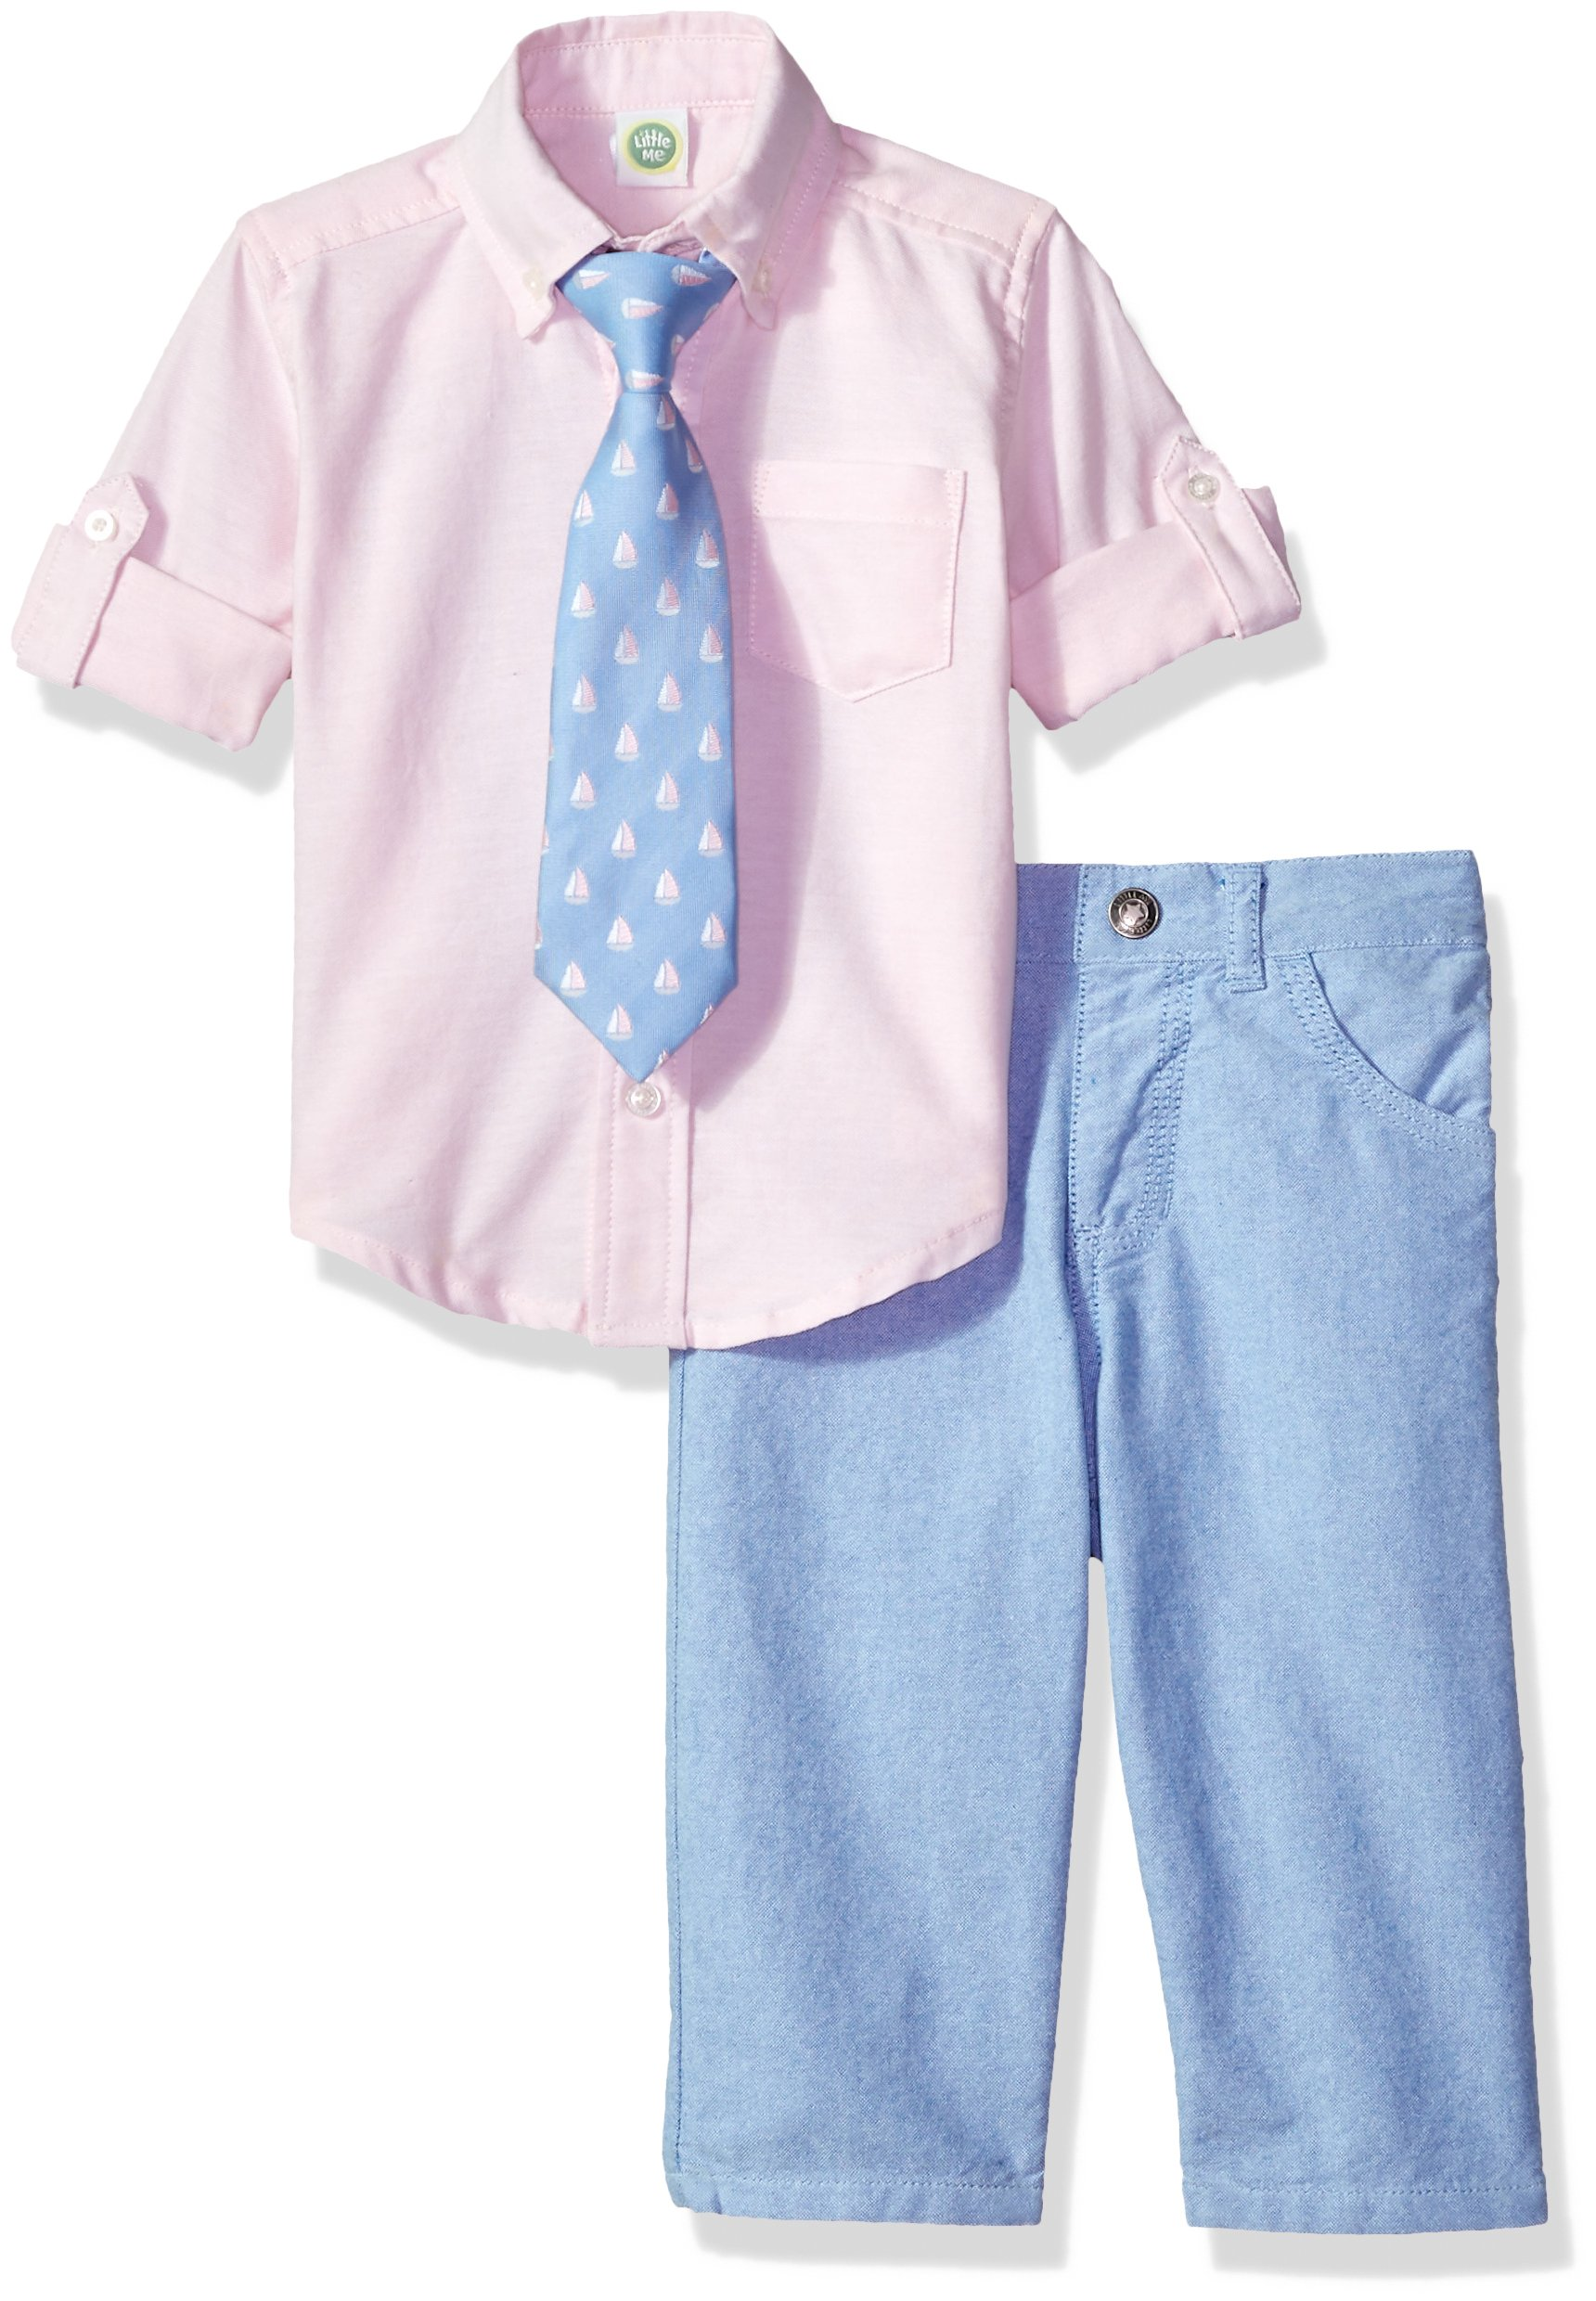 Little Me Baby Boys' Woven Pant Shirt and Tie Set